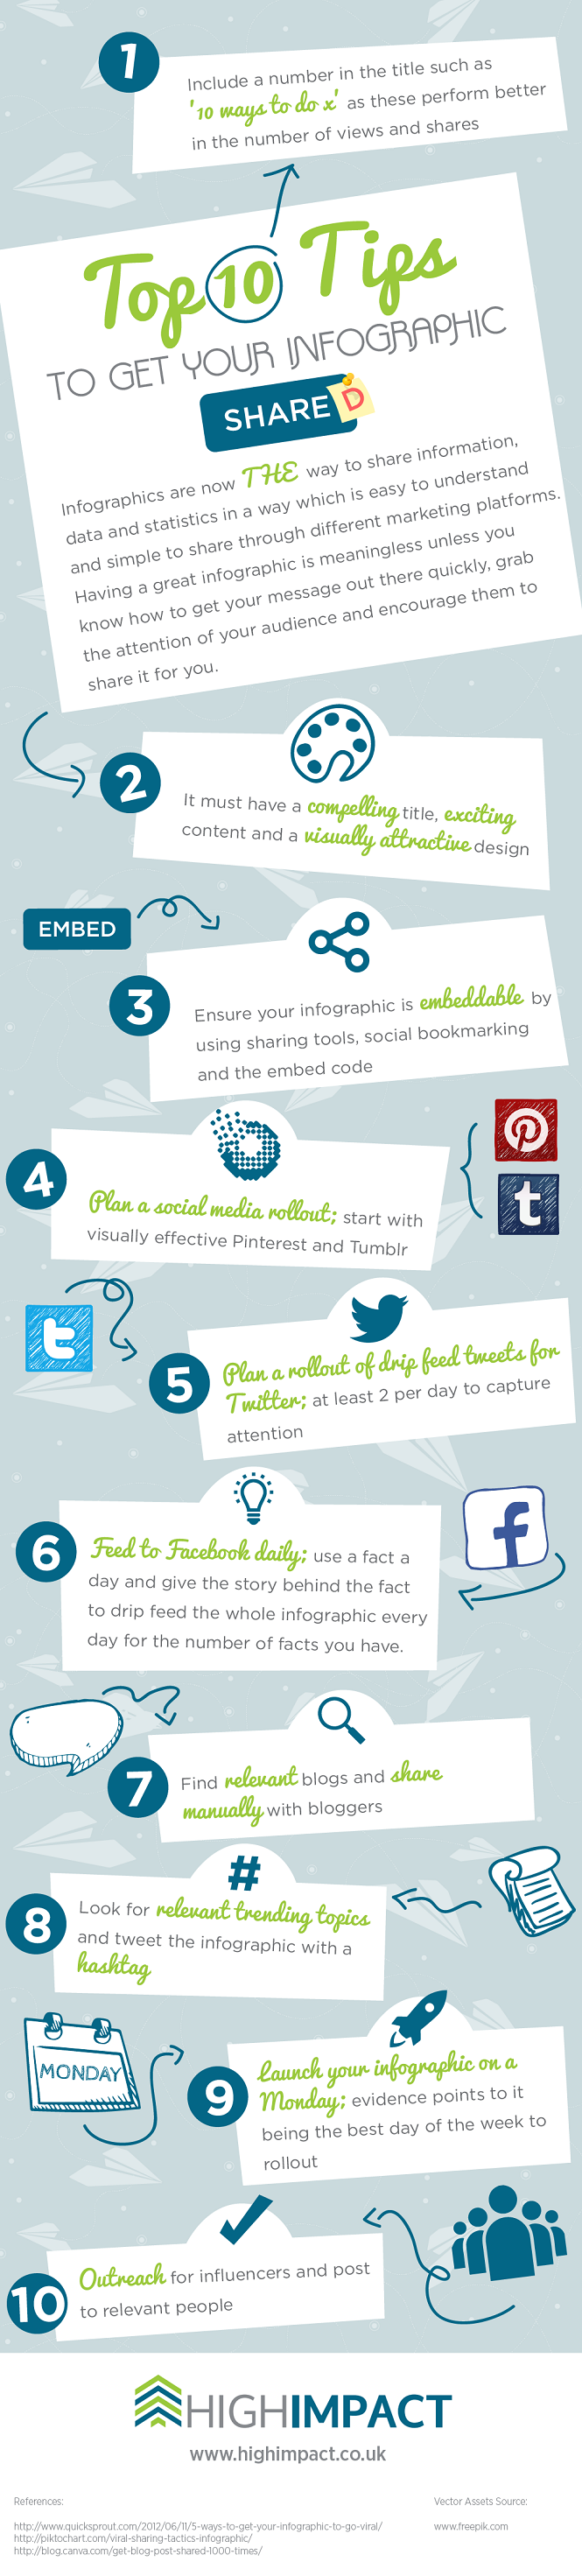 Top 10 Tips To Get Your Infographic Shared